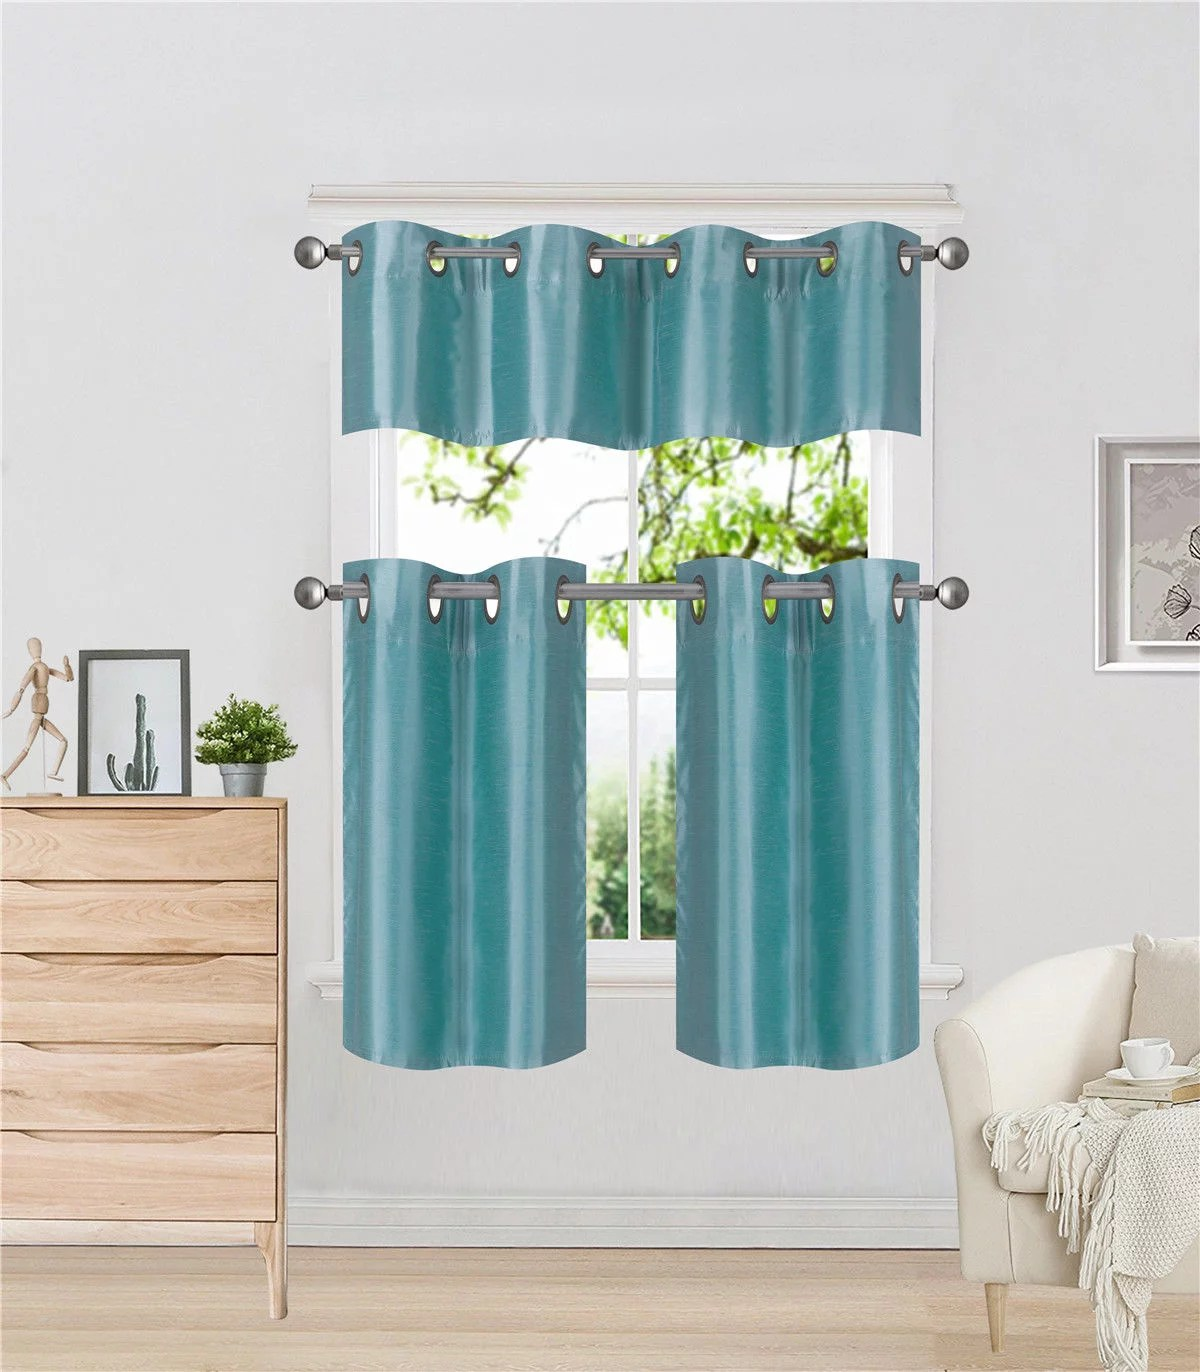 Teal Blackout Curtains K7 Teal 3 Piece Insulated Blackout Curtain Treatment With Grommets For Small Windows Set Includes Two 2 Panels 28